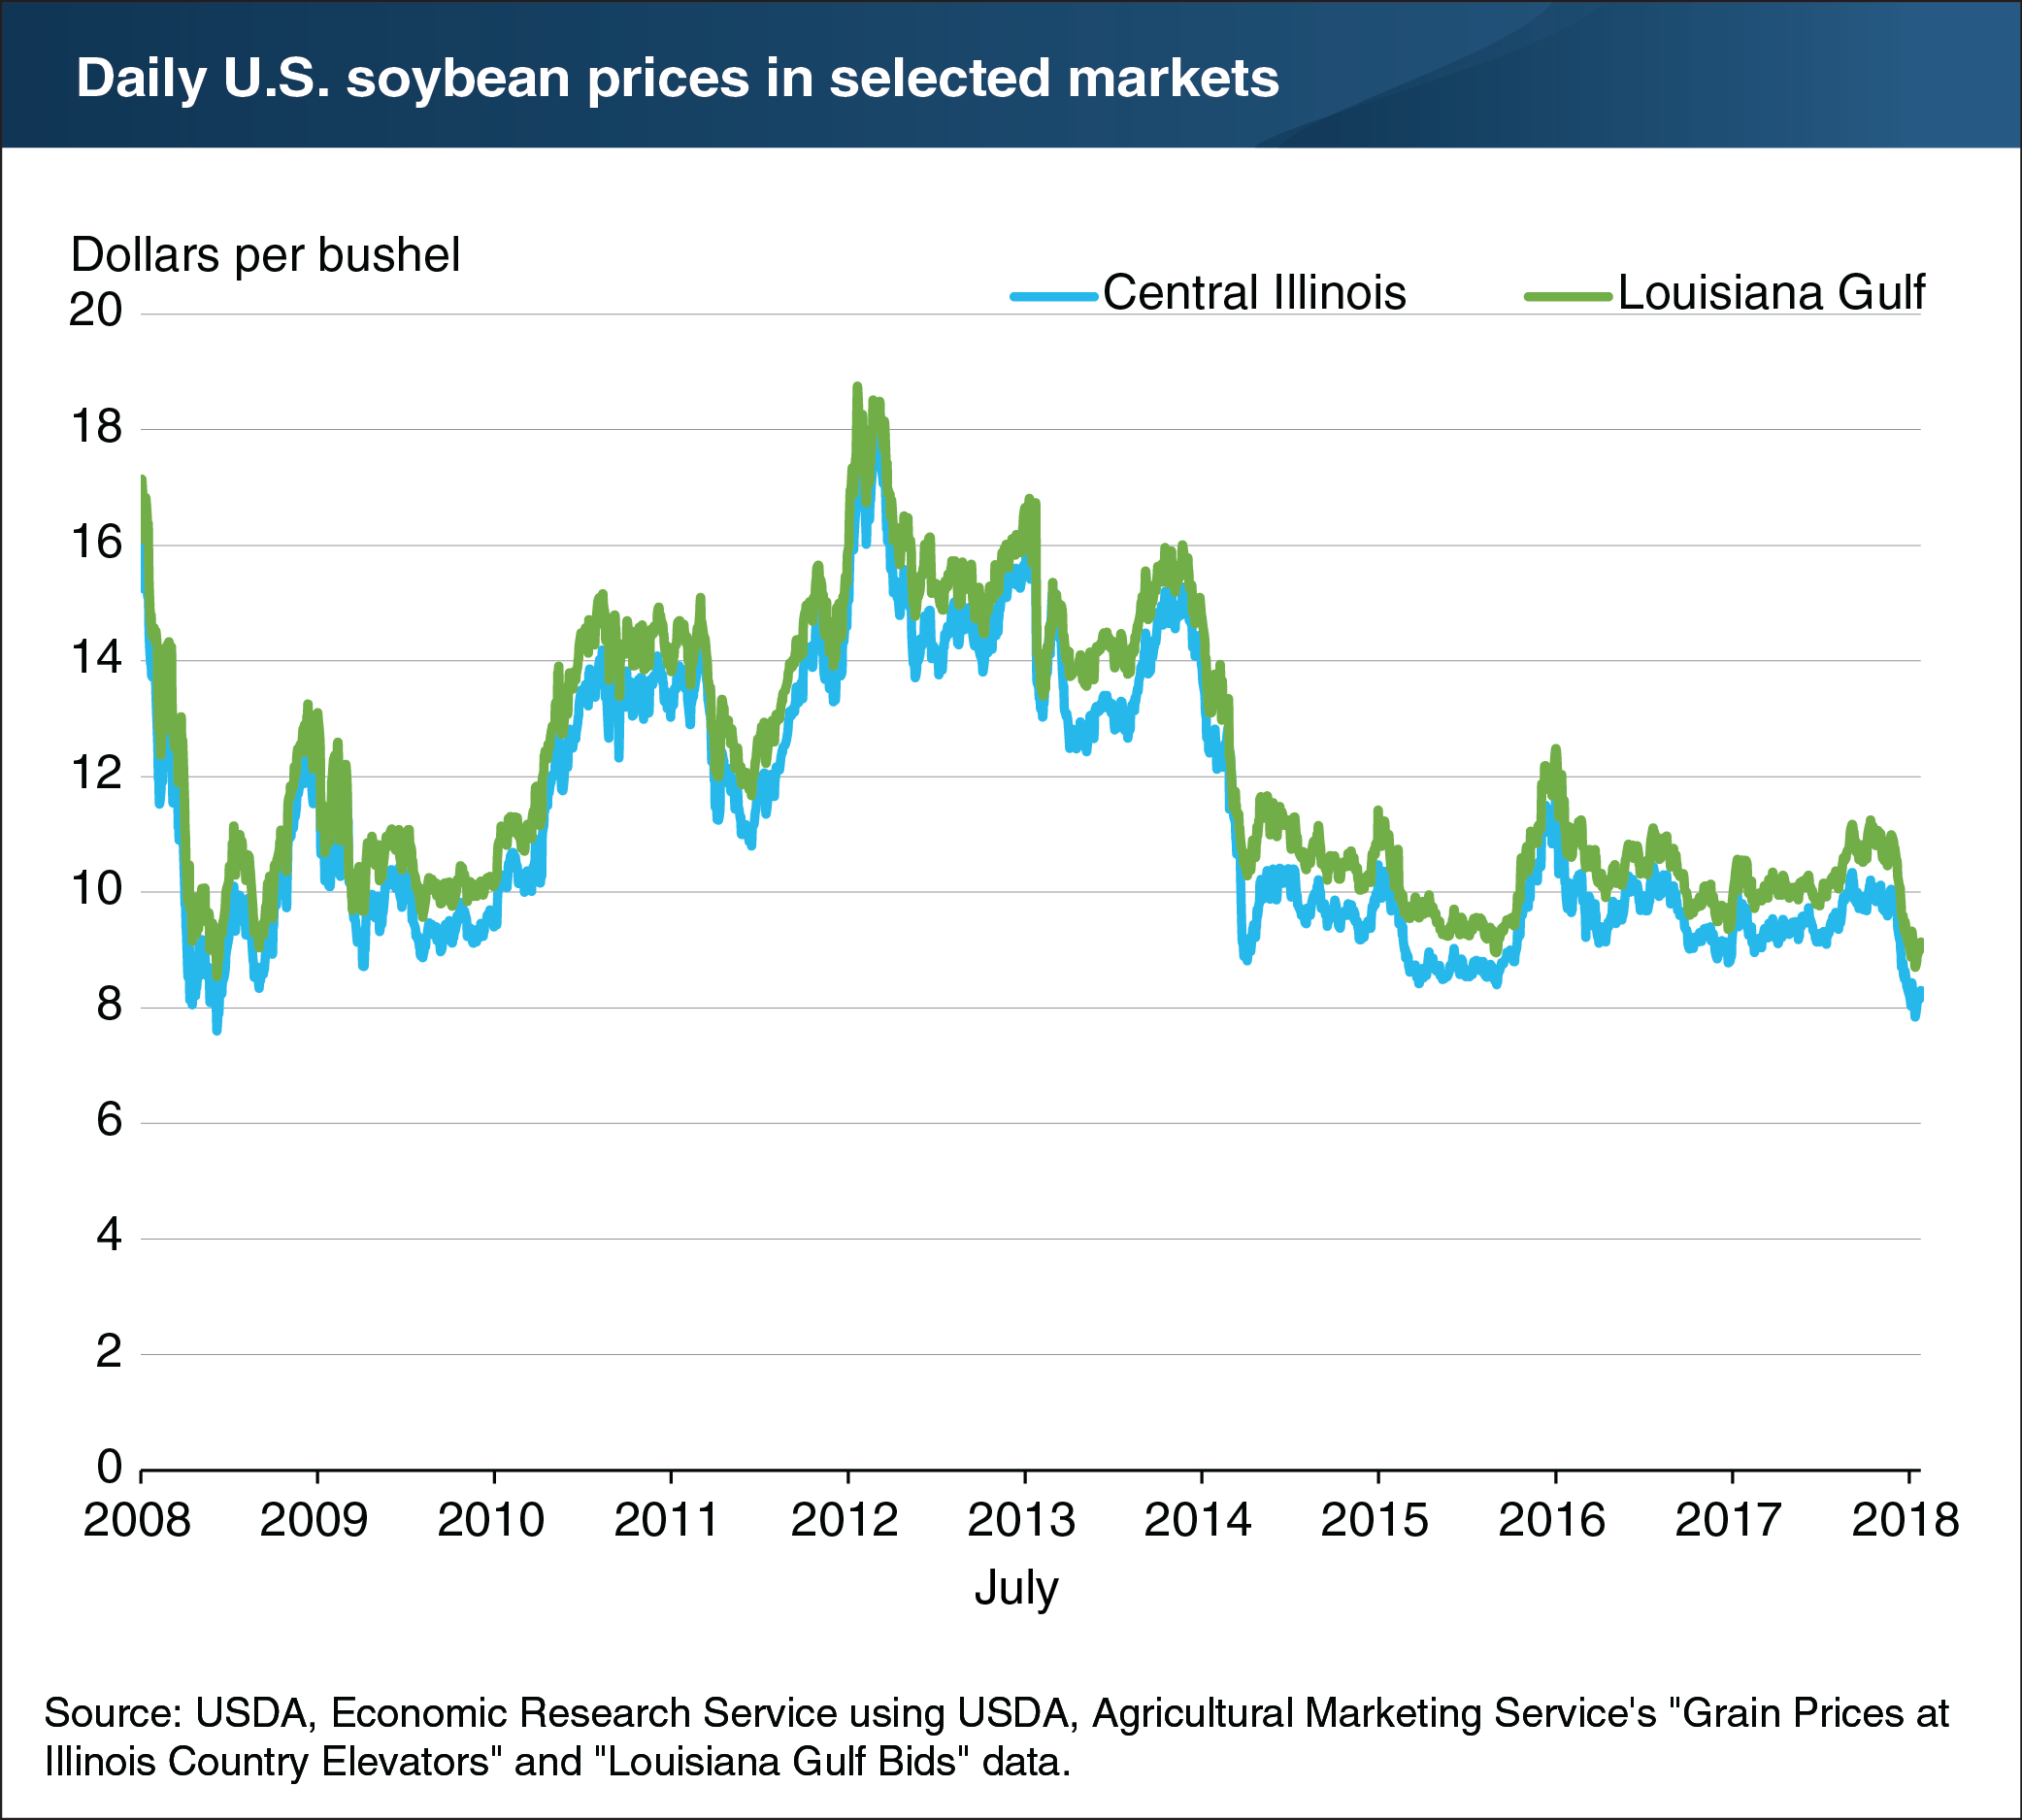 Soybean Prices in Selected Markets, mid-2018. Courtesy USDA Economic Research Service